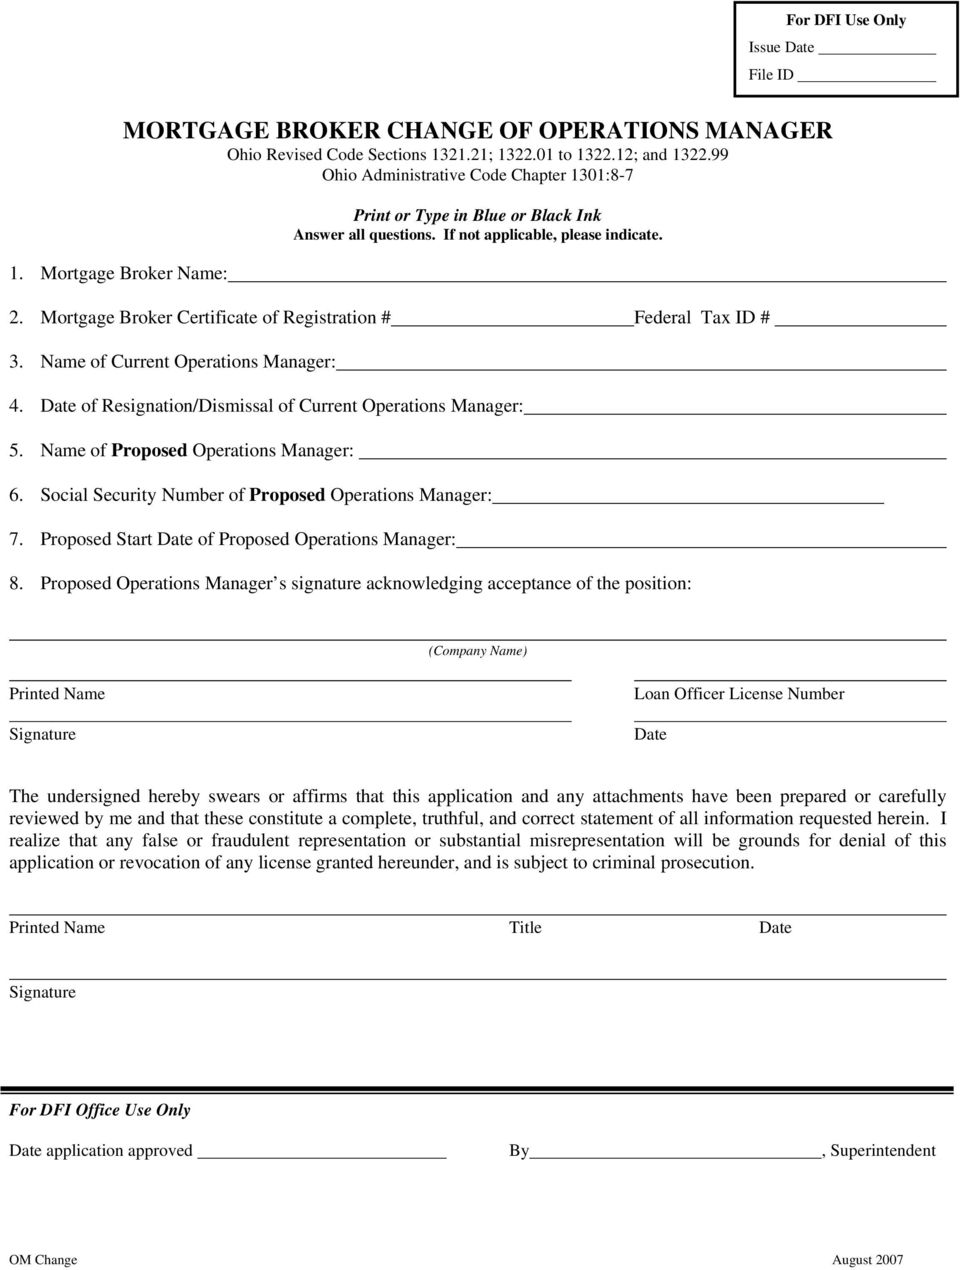 Mortgage Broker Certificate of Registration # Federal Tax ID # 3. Name of Current Operations Manager: 4. Date of Resignation/Dismissal of Current Operations Manager: 5.